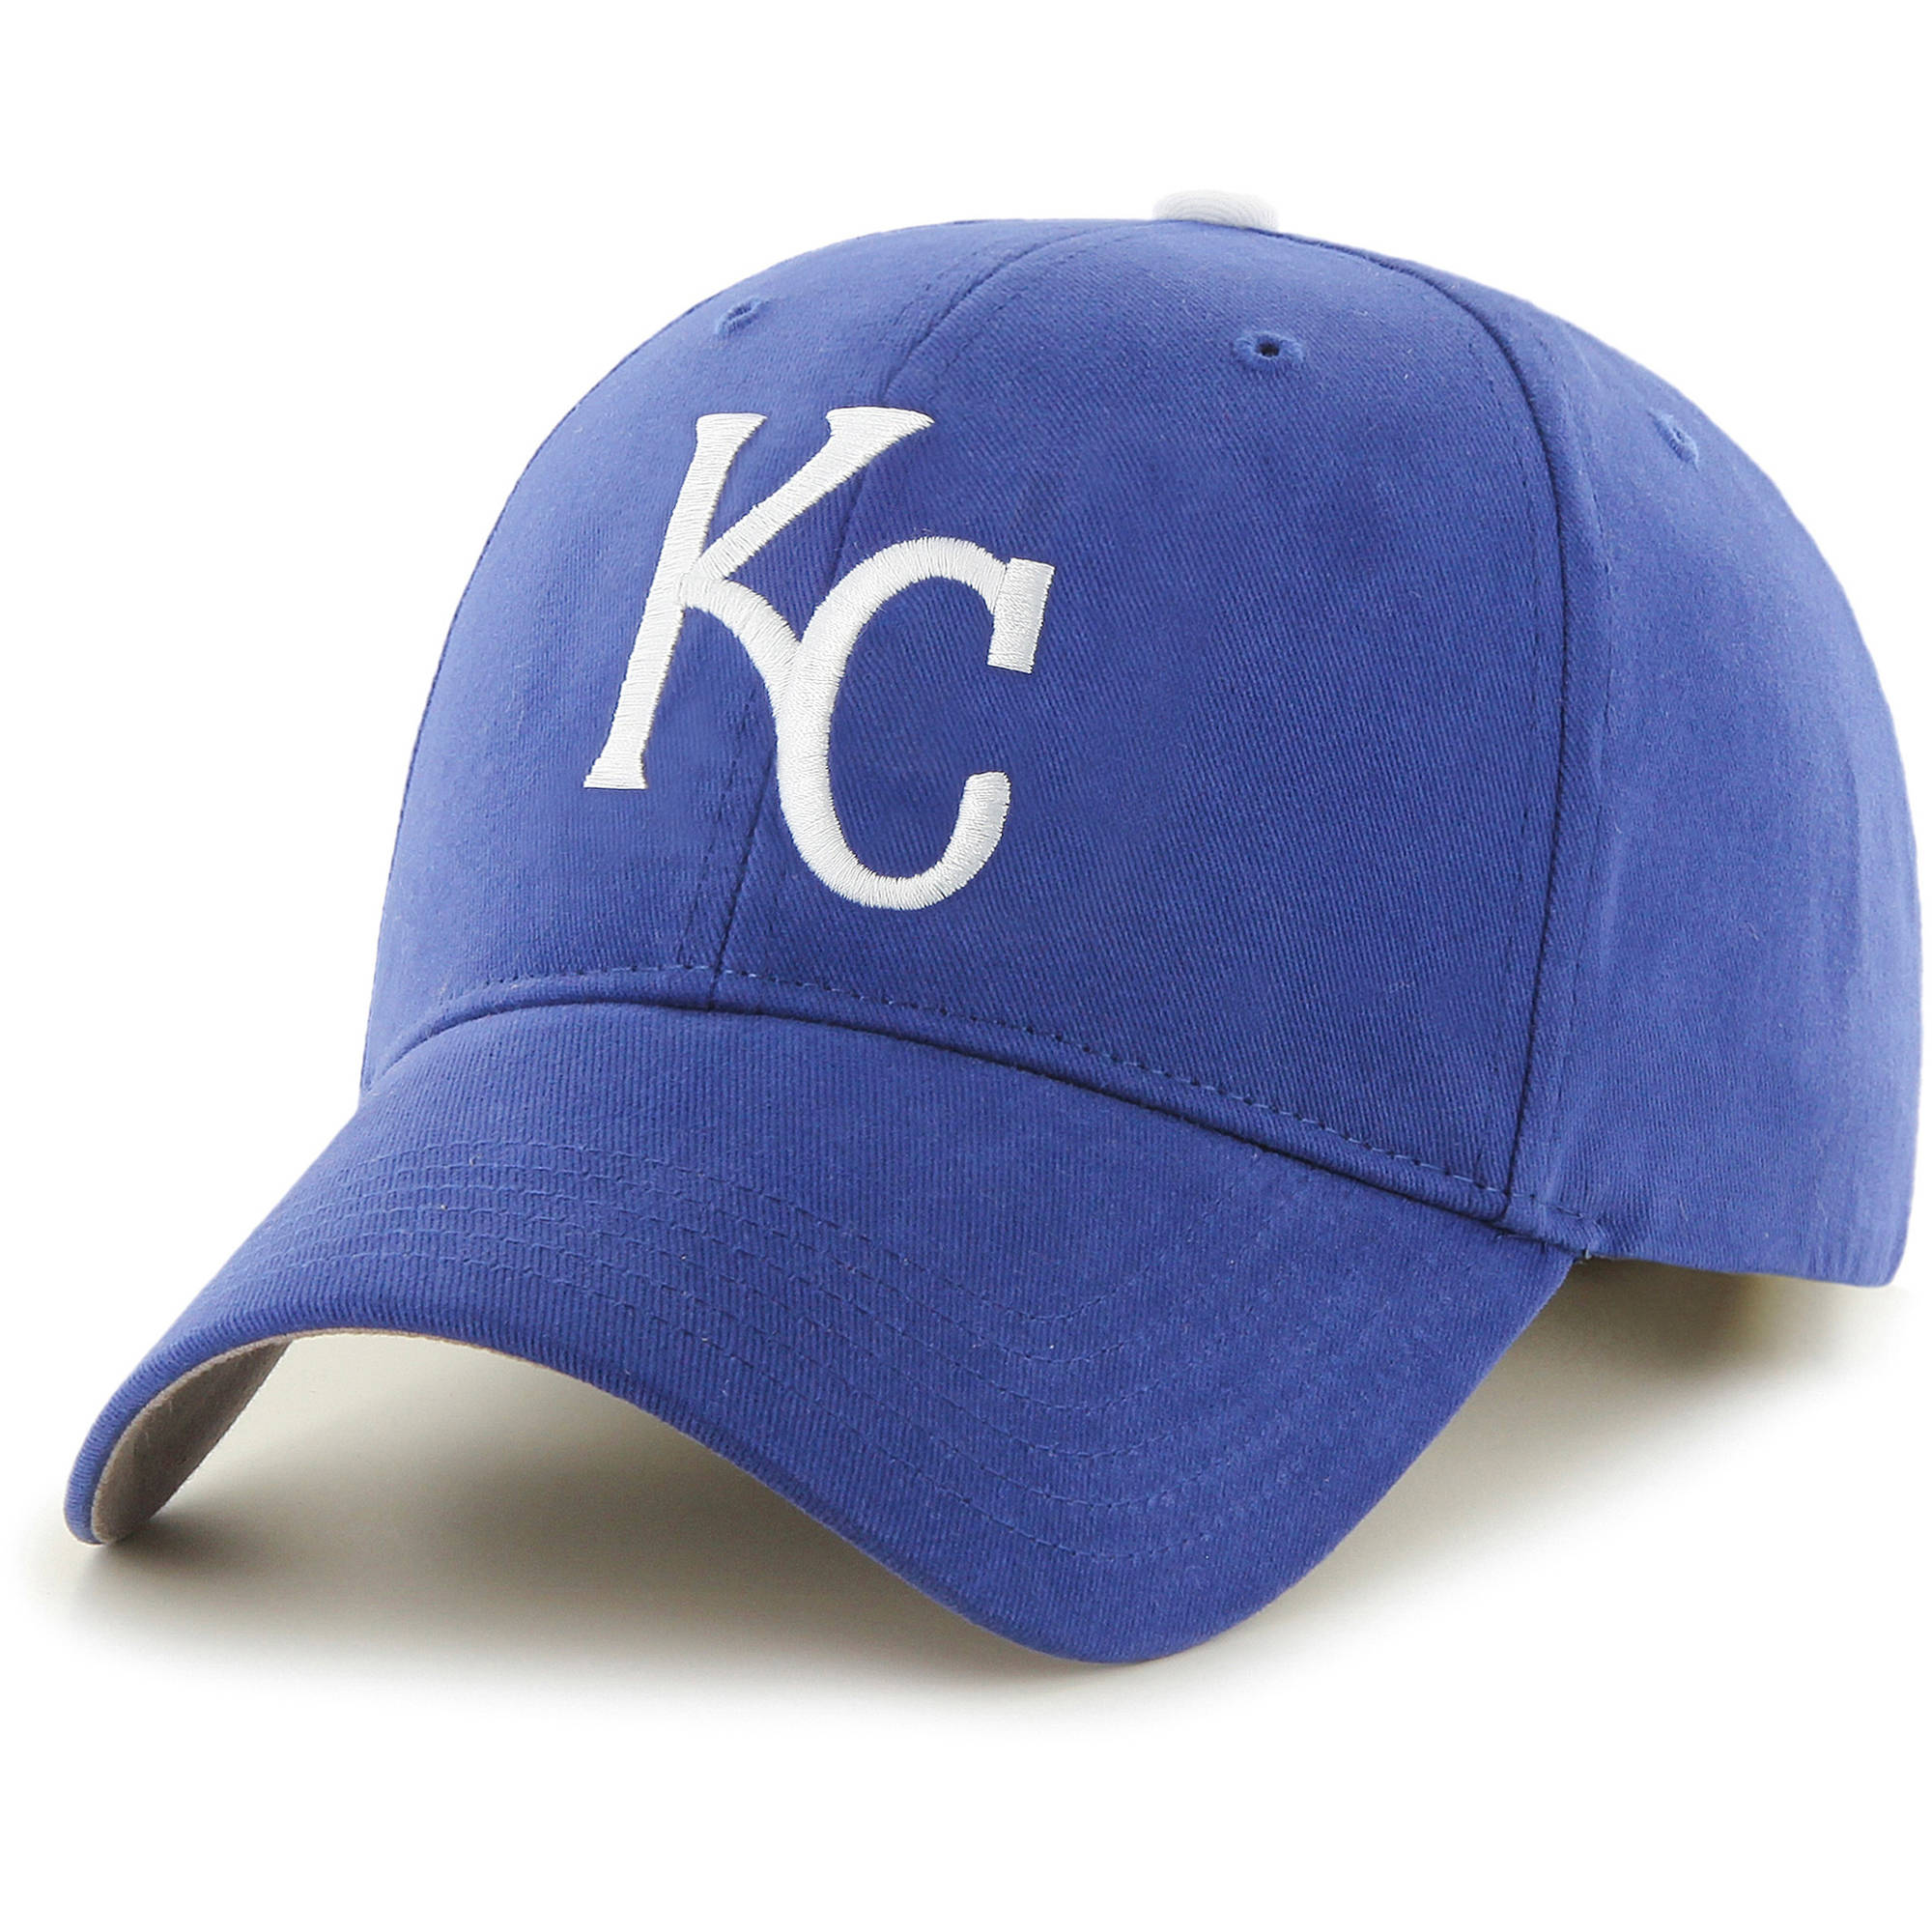 MLB Kansas City Royals Basic Cap / Hat by Fan Favorite